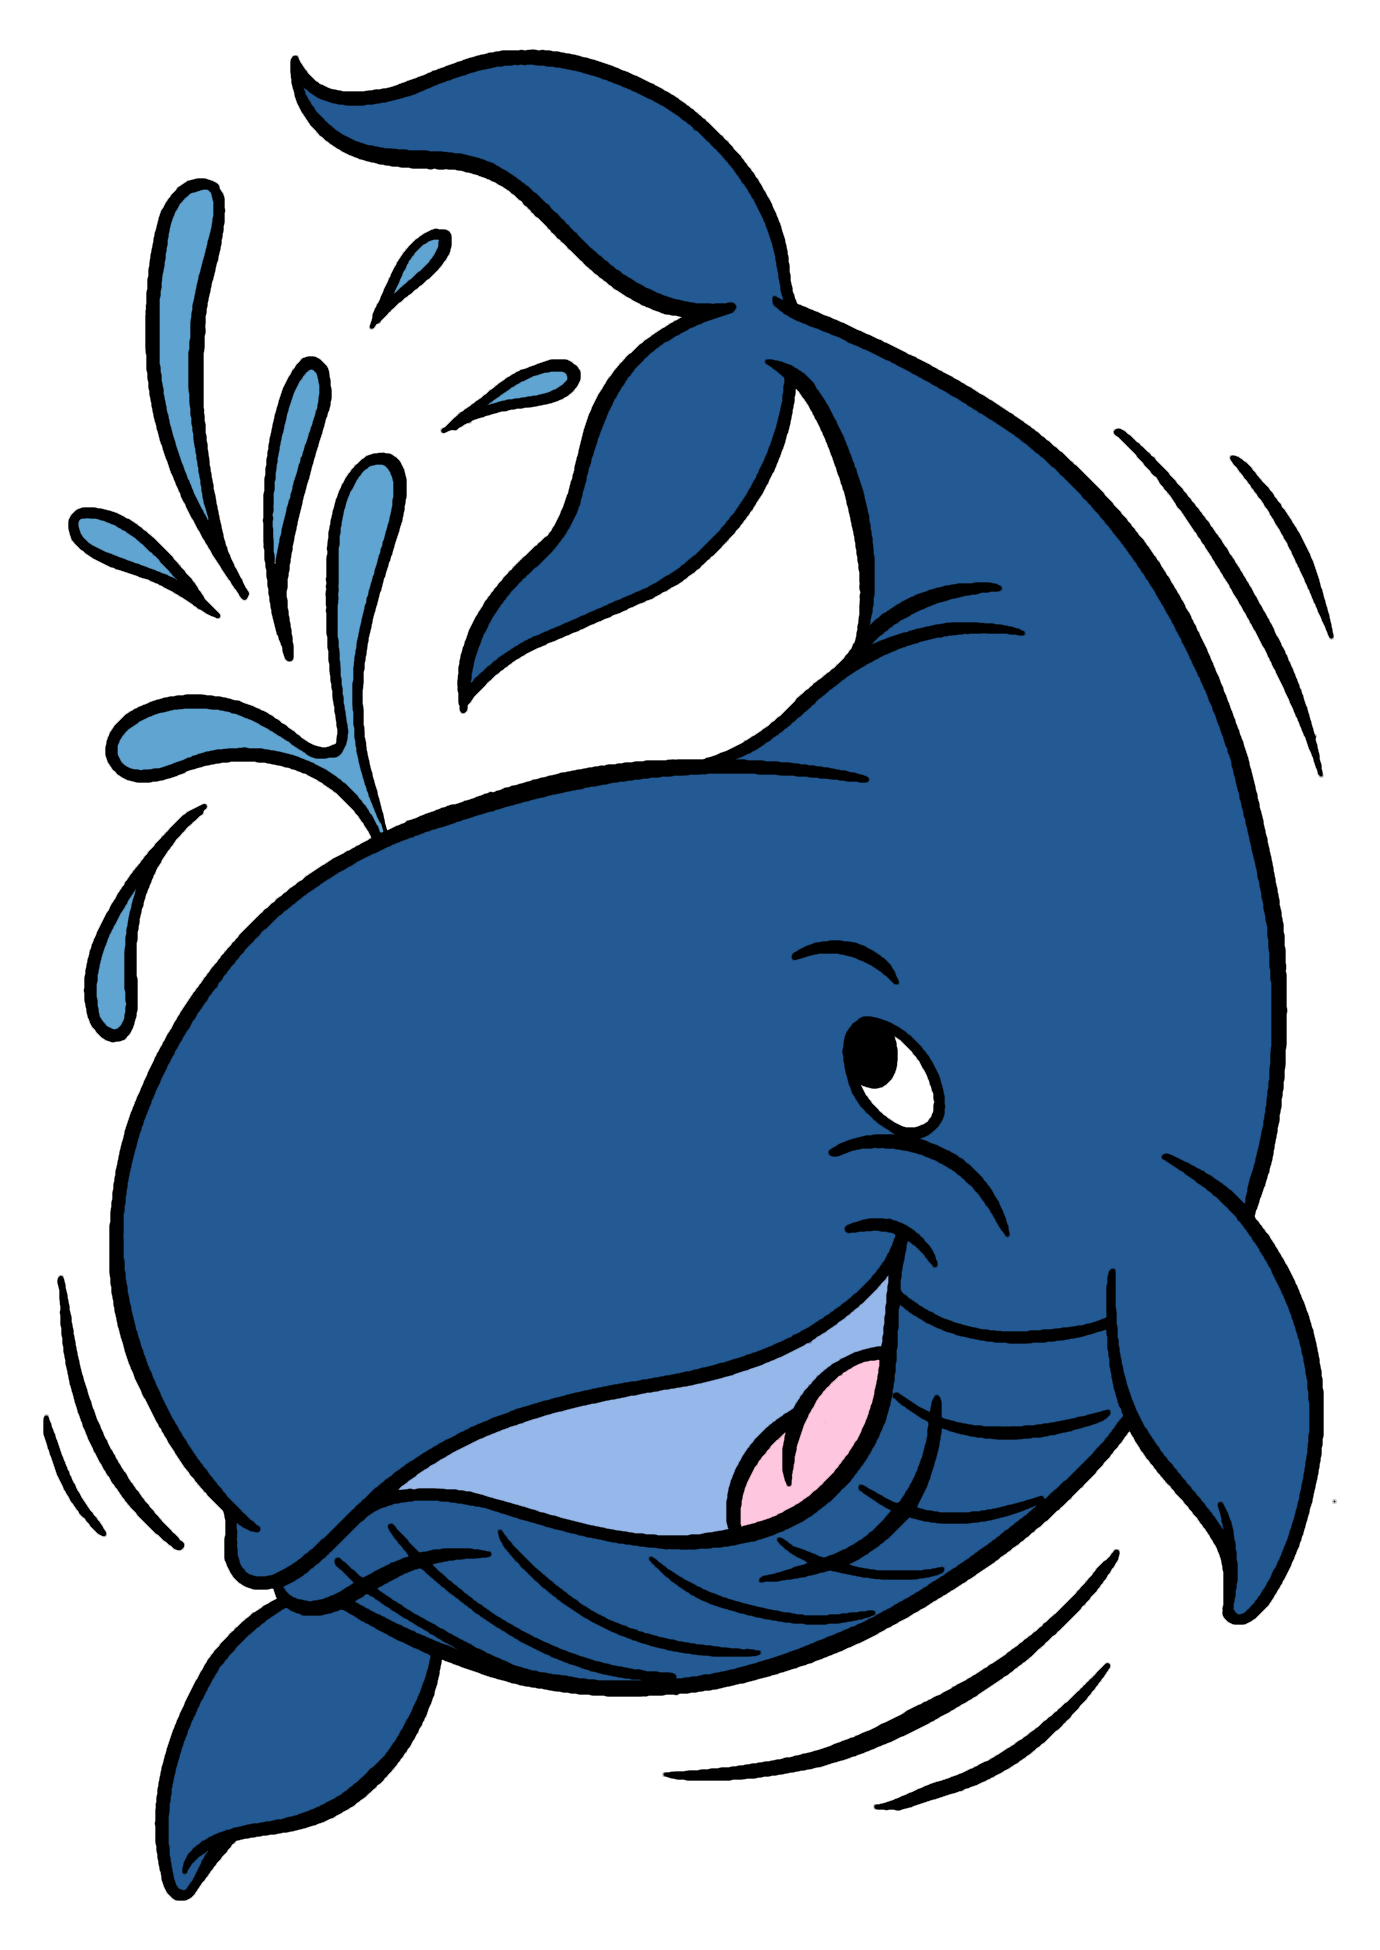 1380x1950 Whale Clipart Crafts Vbs 2016, Clip Art And Rock